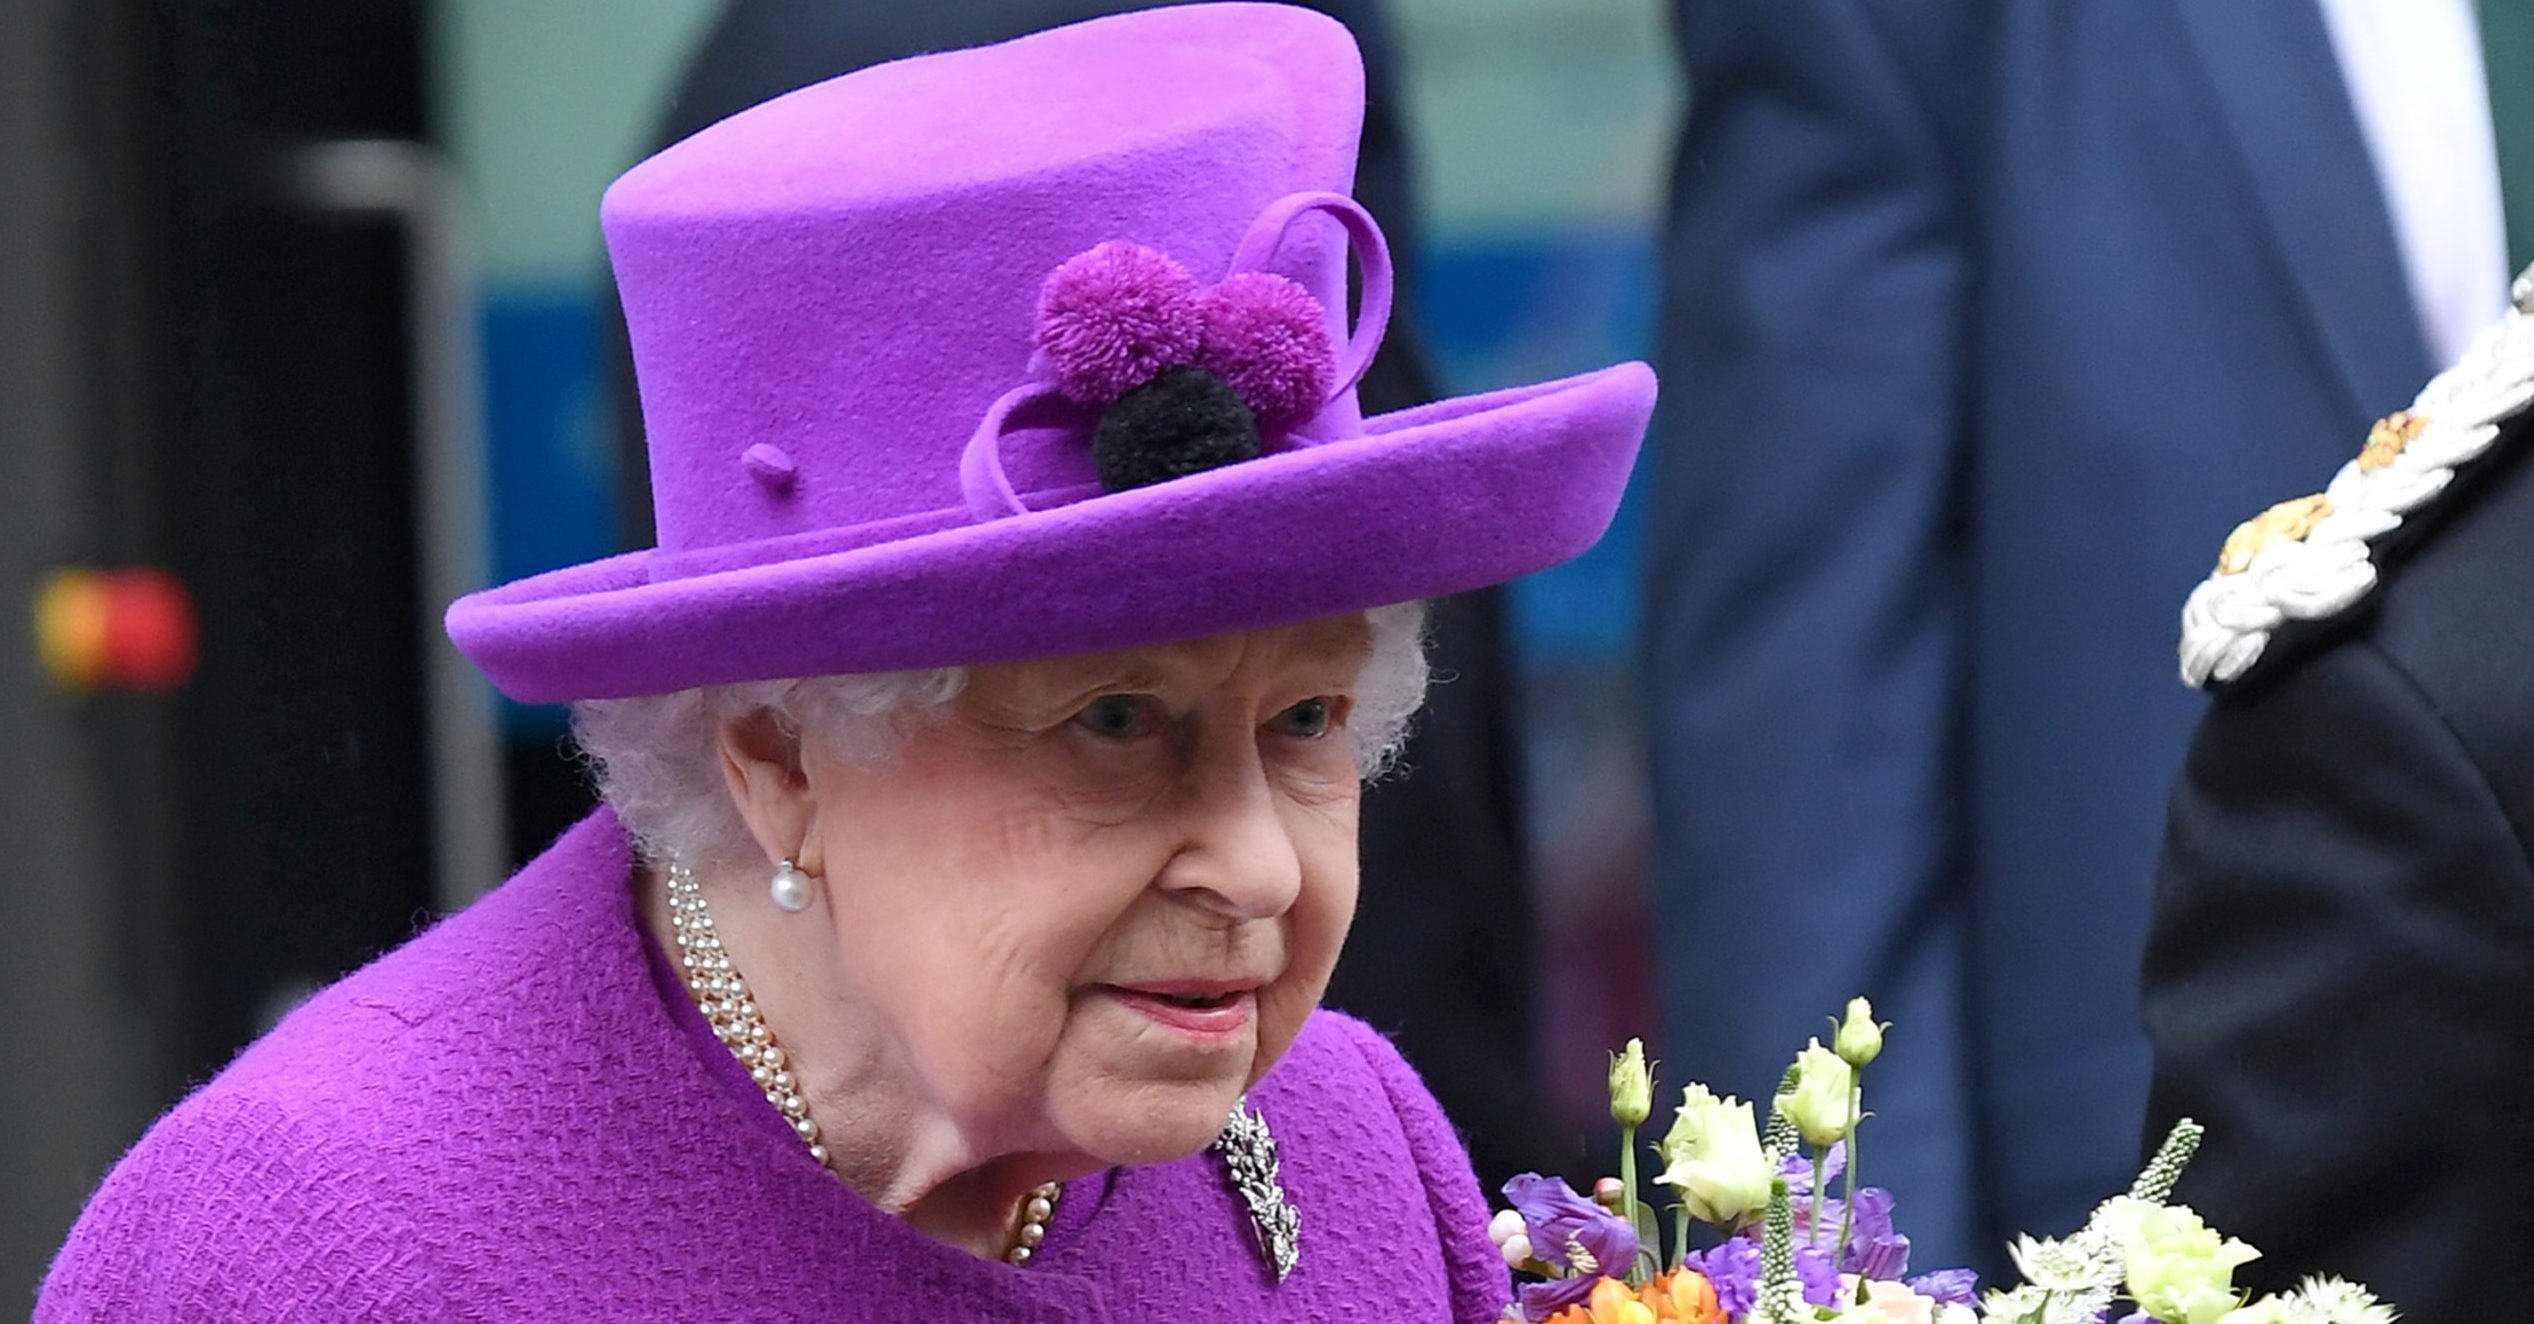 The Queen cancels birthday gun salutes for 94th birthday